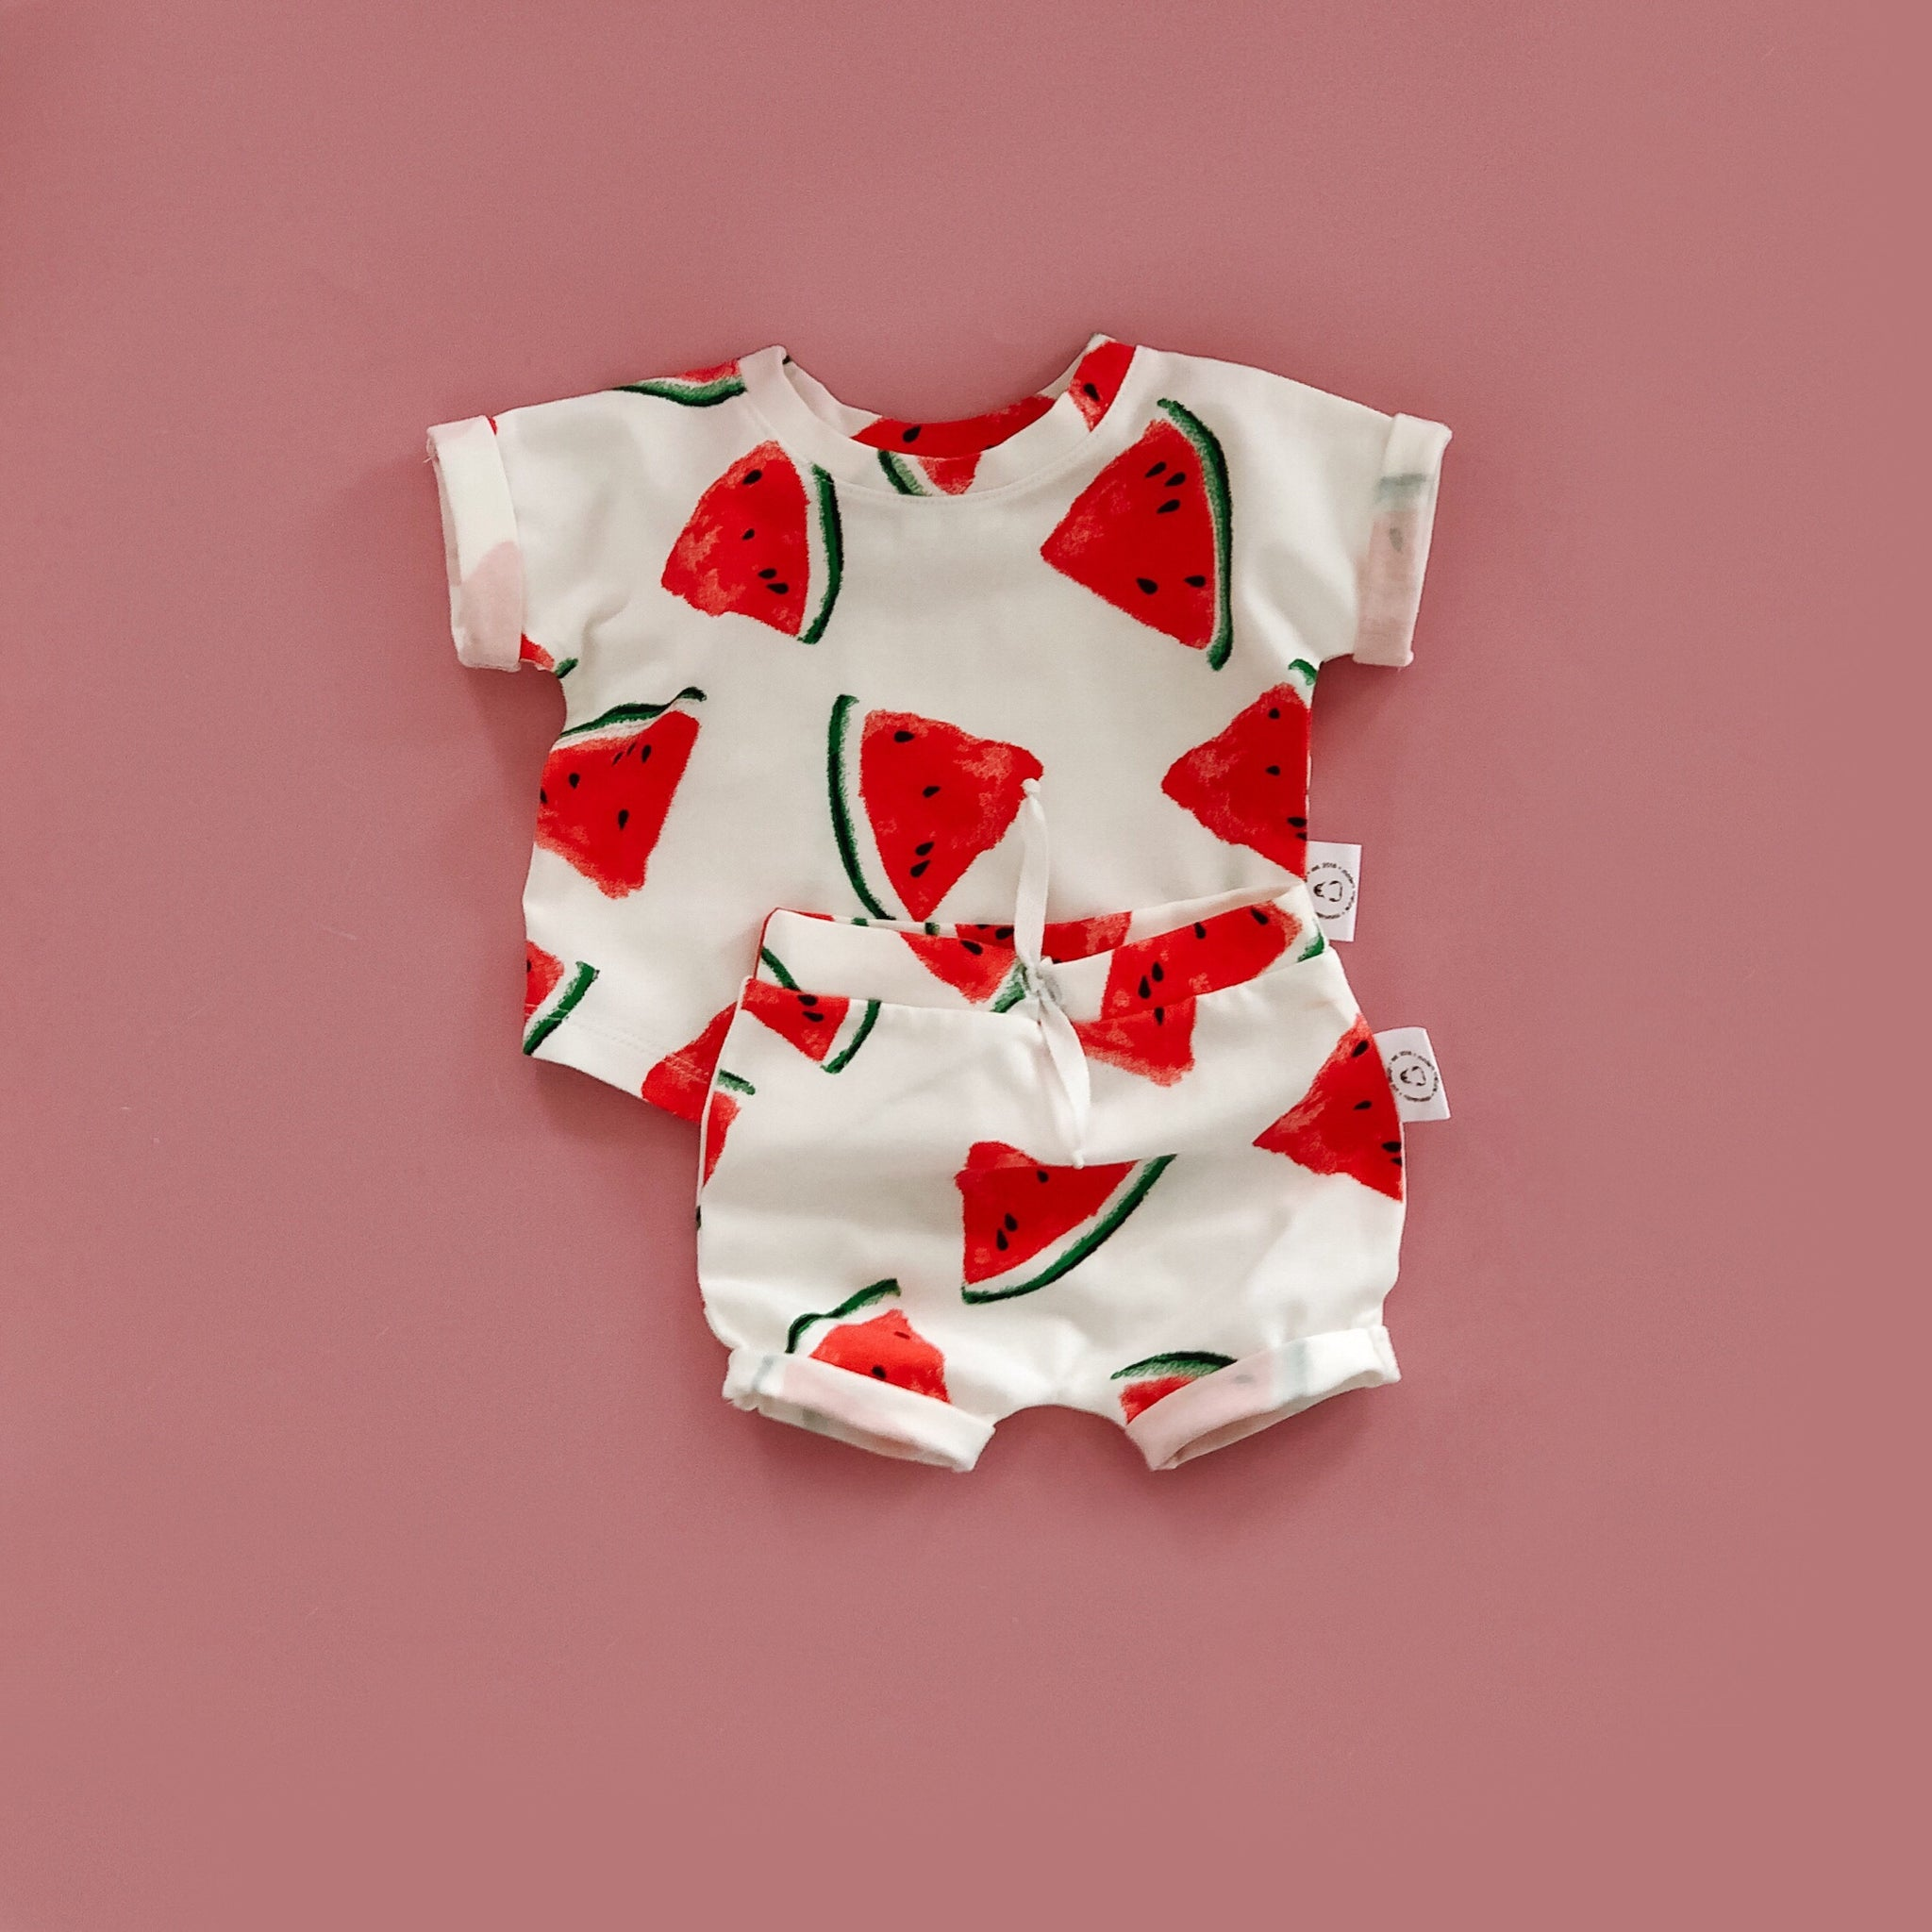 T-shirt With Watermelons